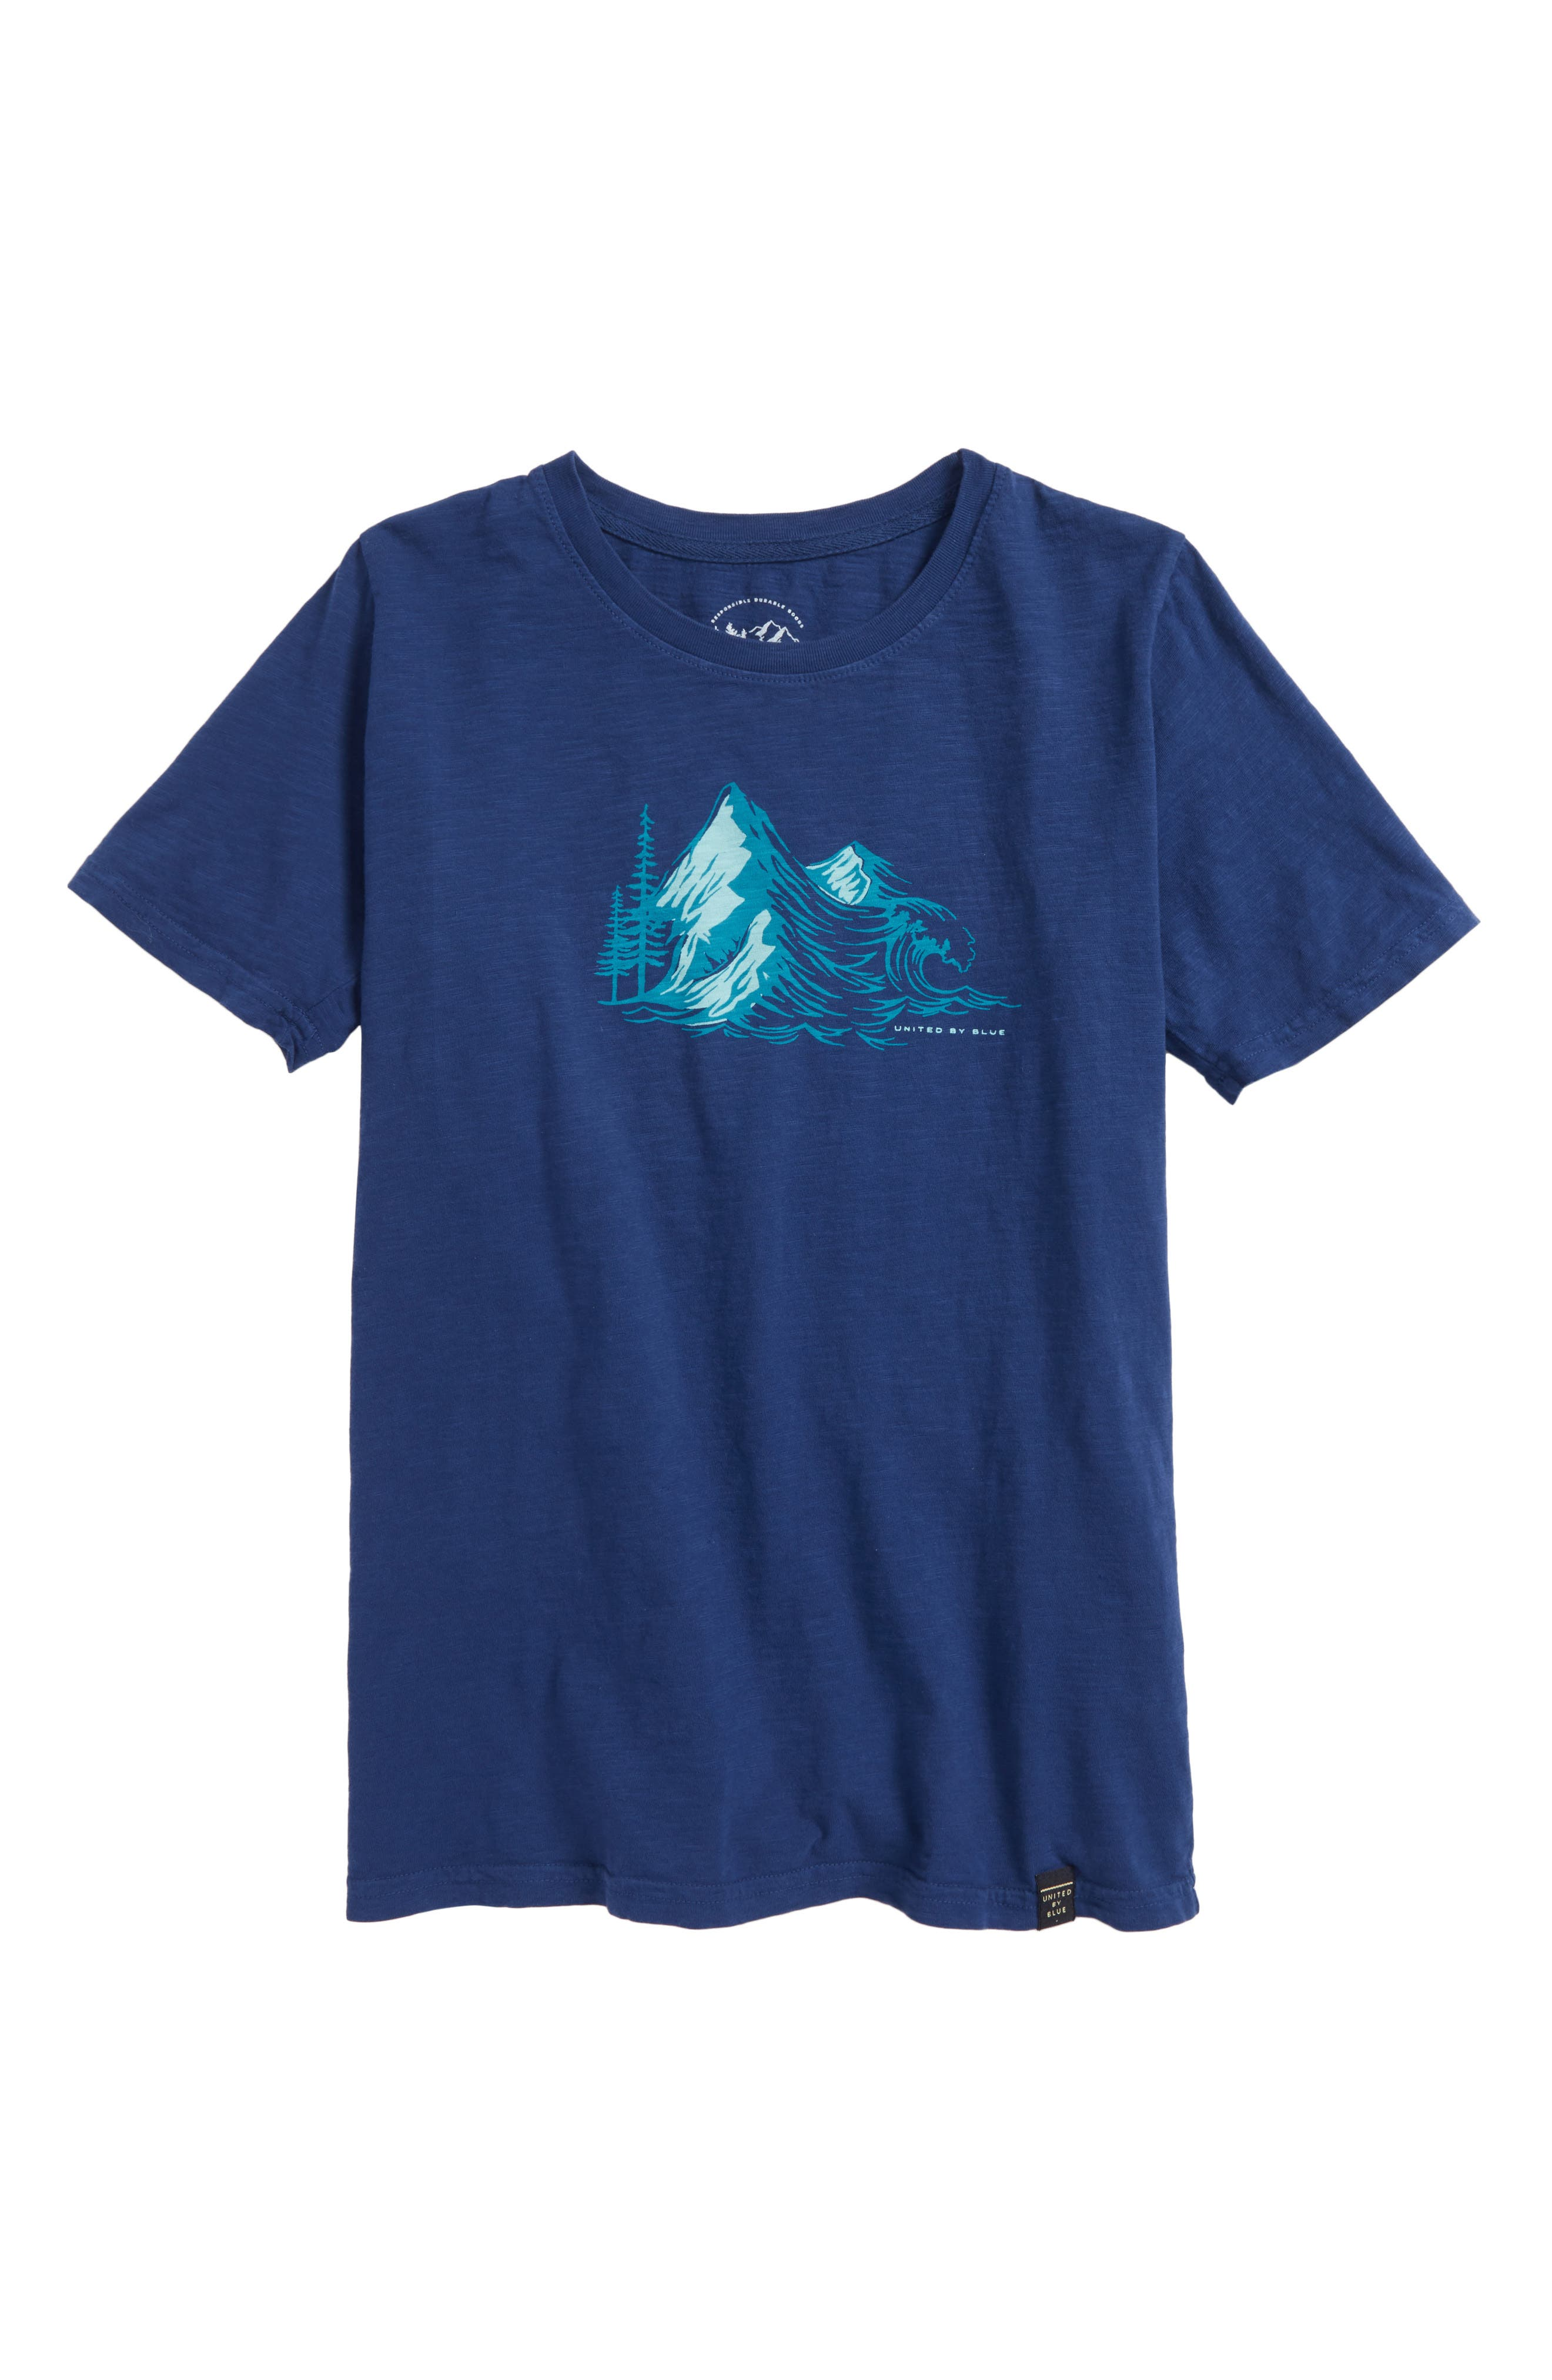 Peaks Graphic Organic Cotton T-Shirt,                             Main thumbnail 1, color,